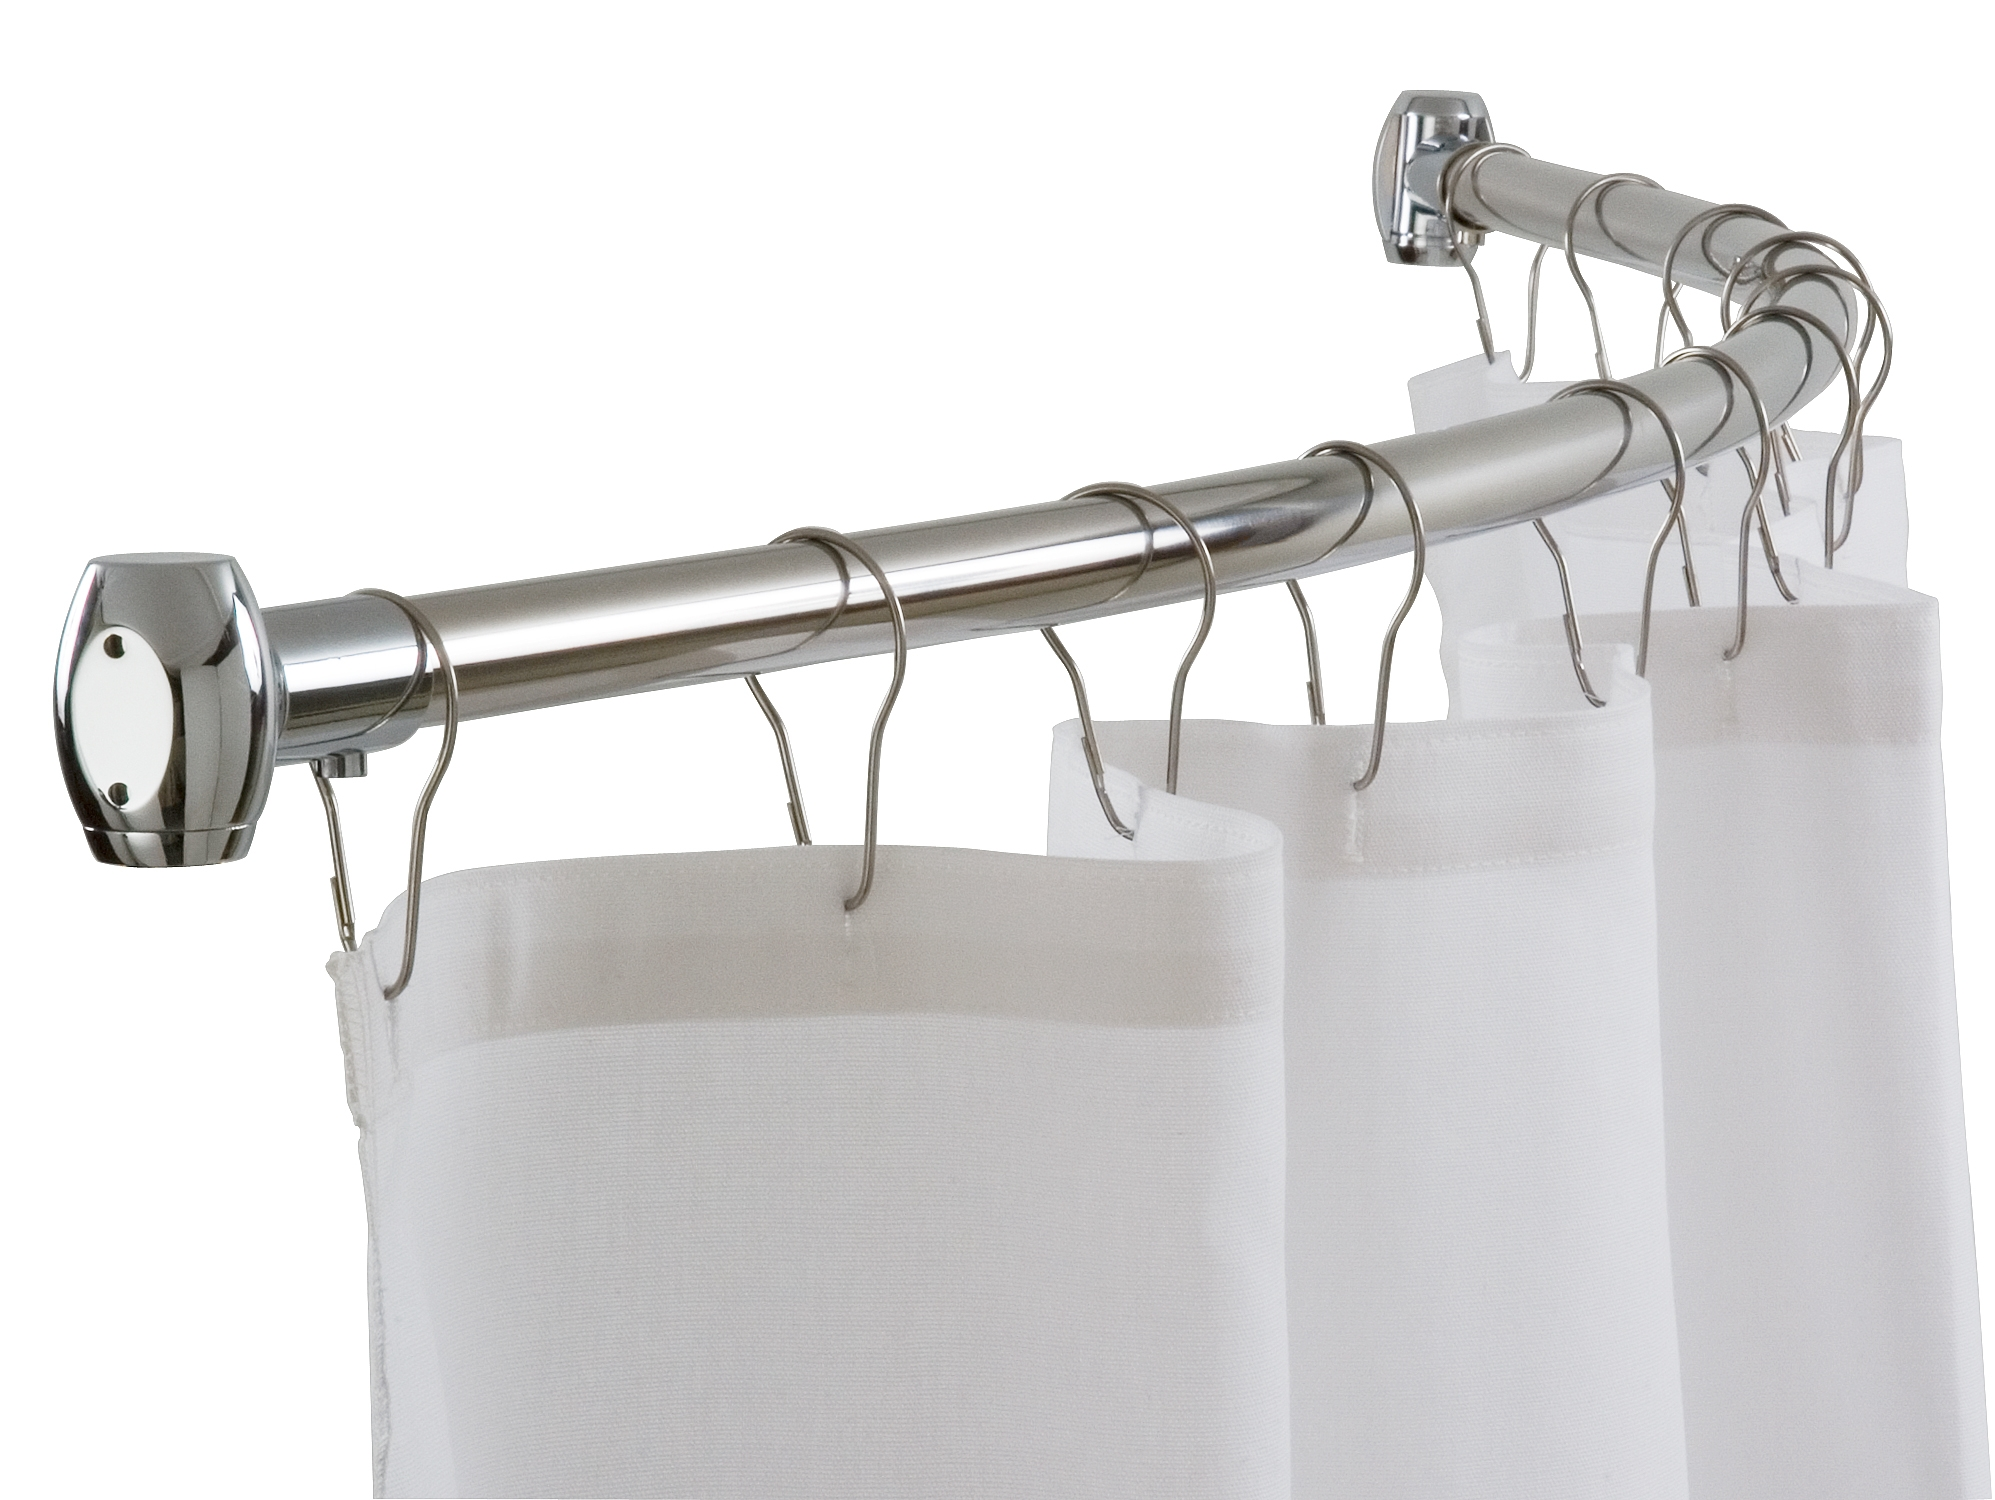 Curved Shower Curtain Rod - Bradley Corporation